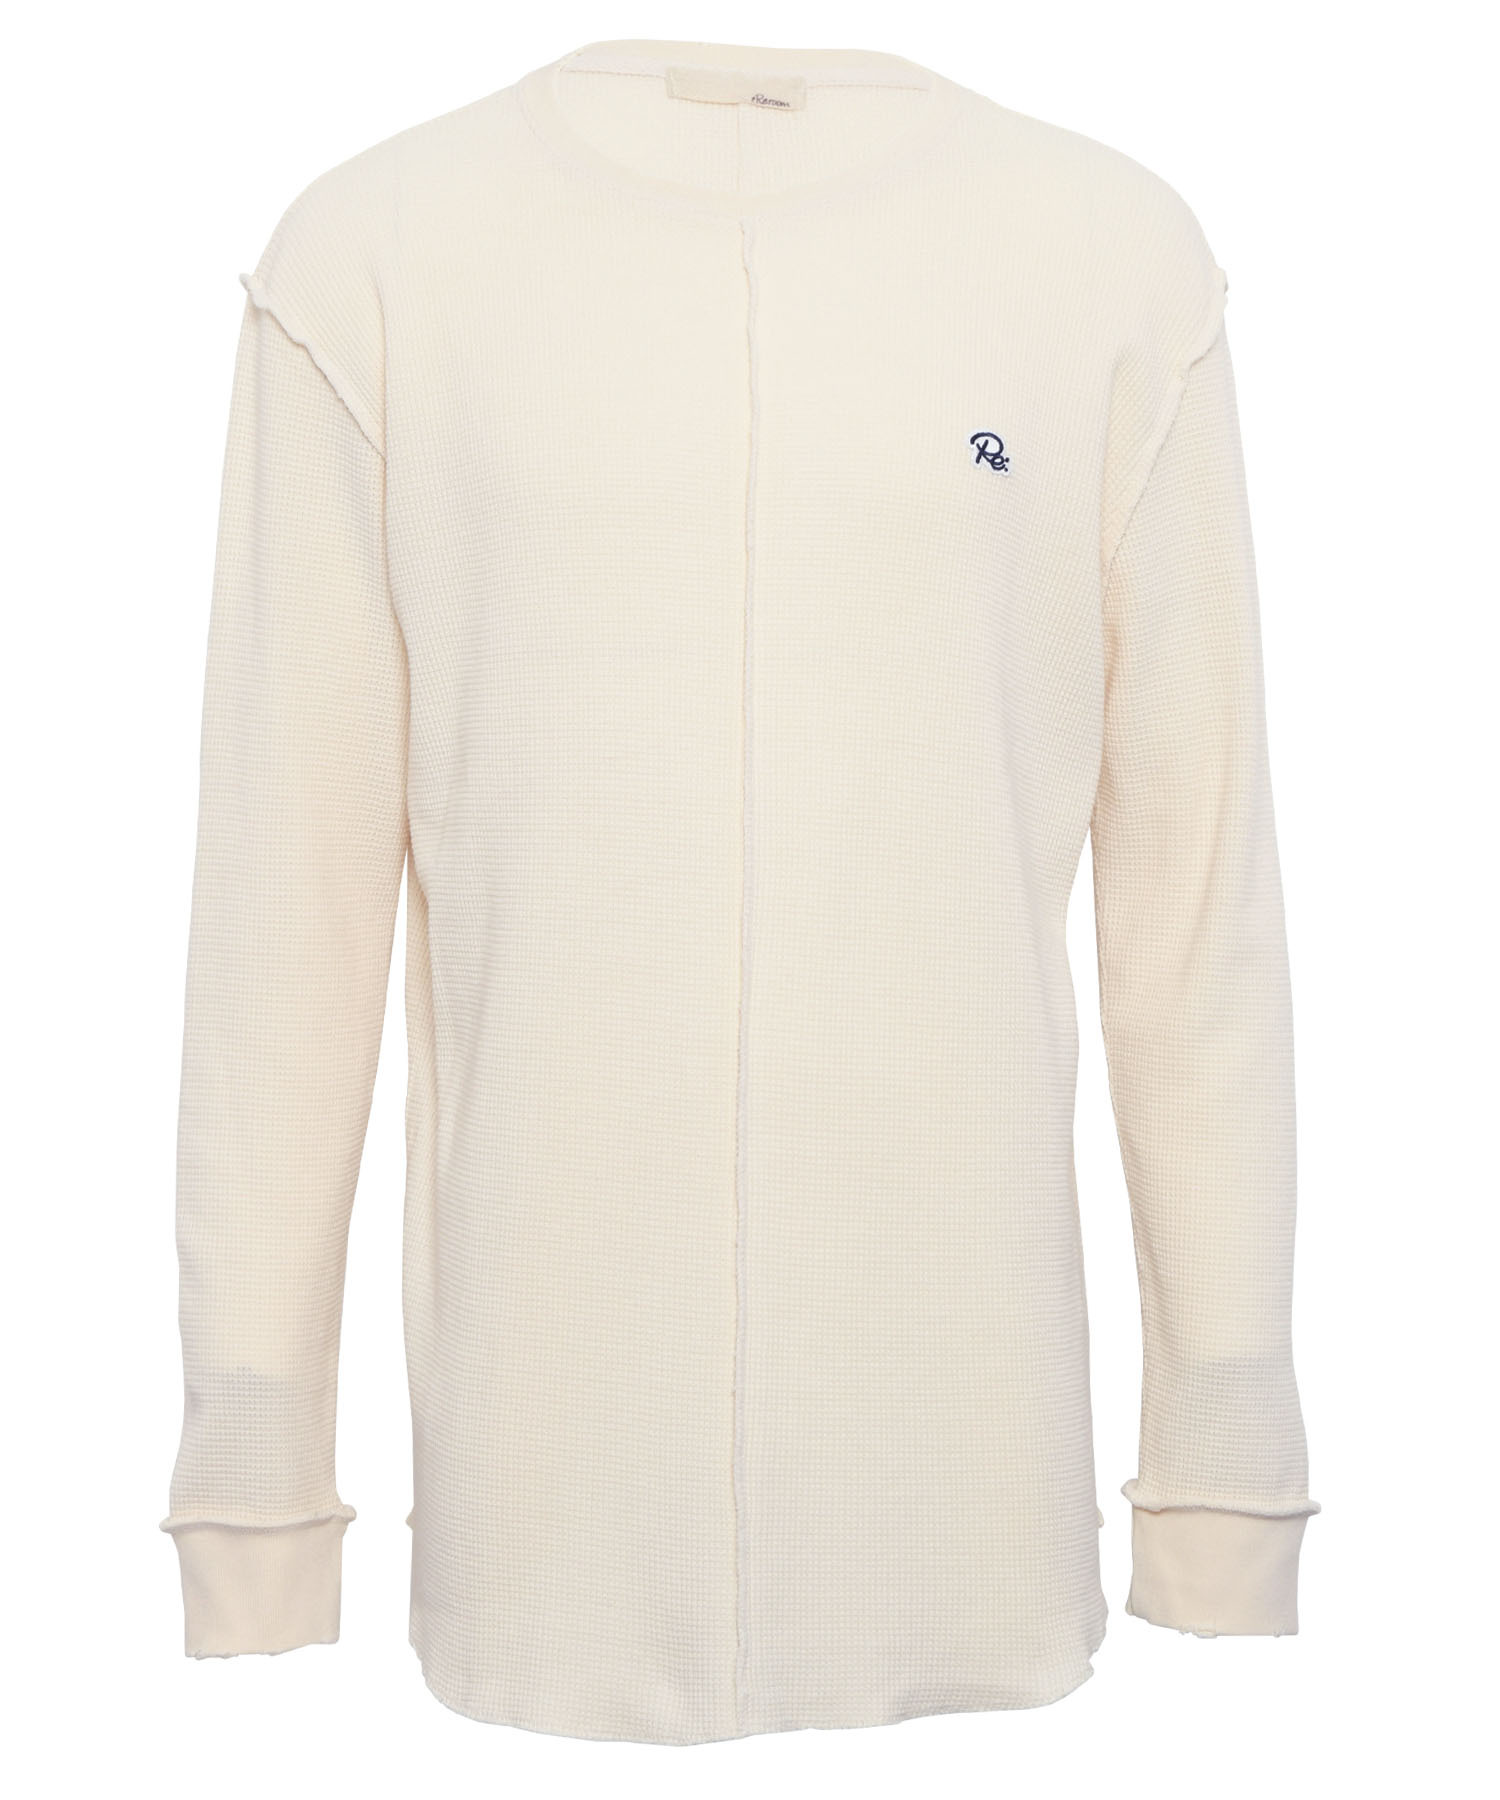 ONE POINT ICON VINTAGE WAFFLE LONG SLEEVE[REC413]